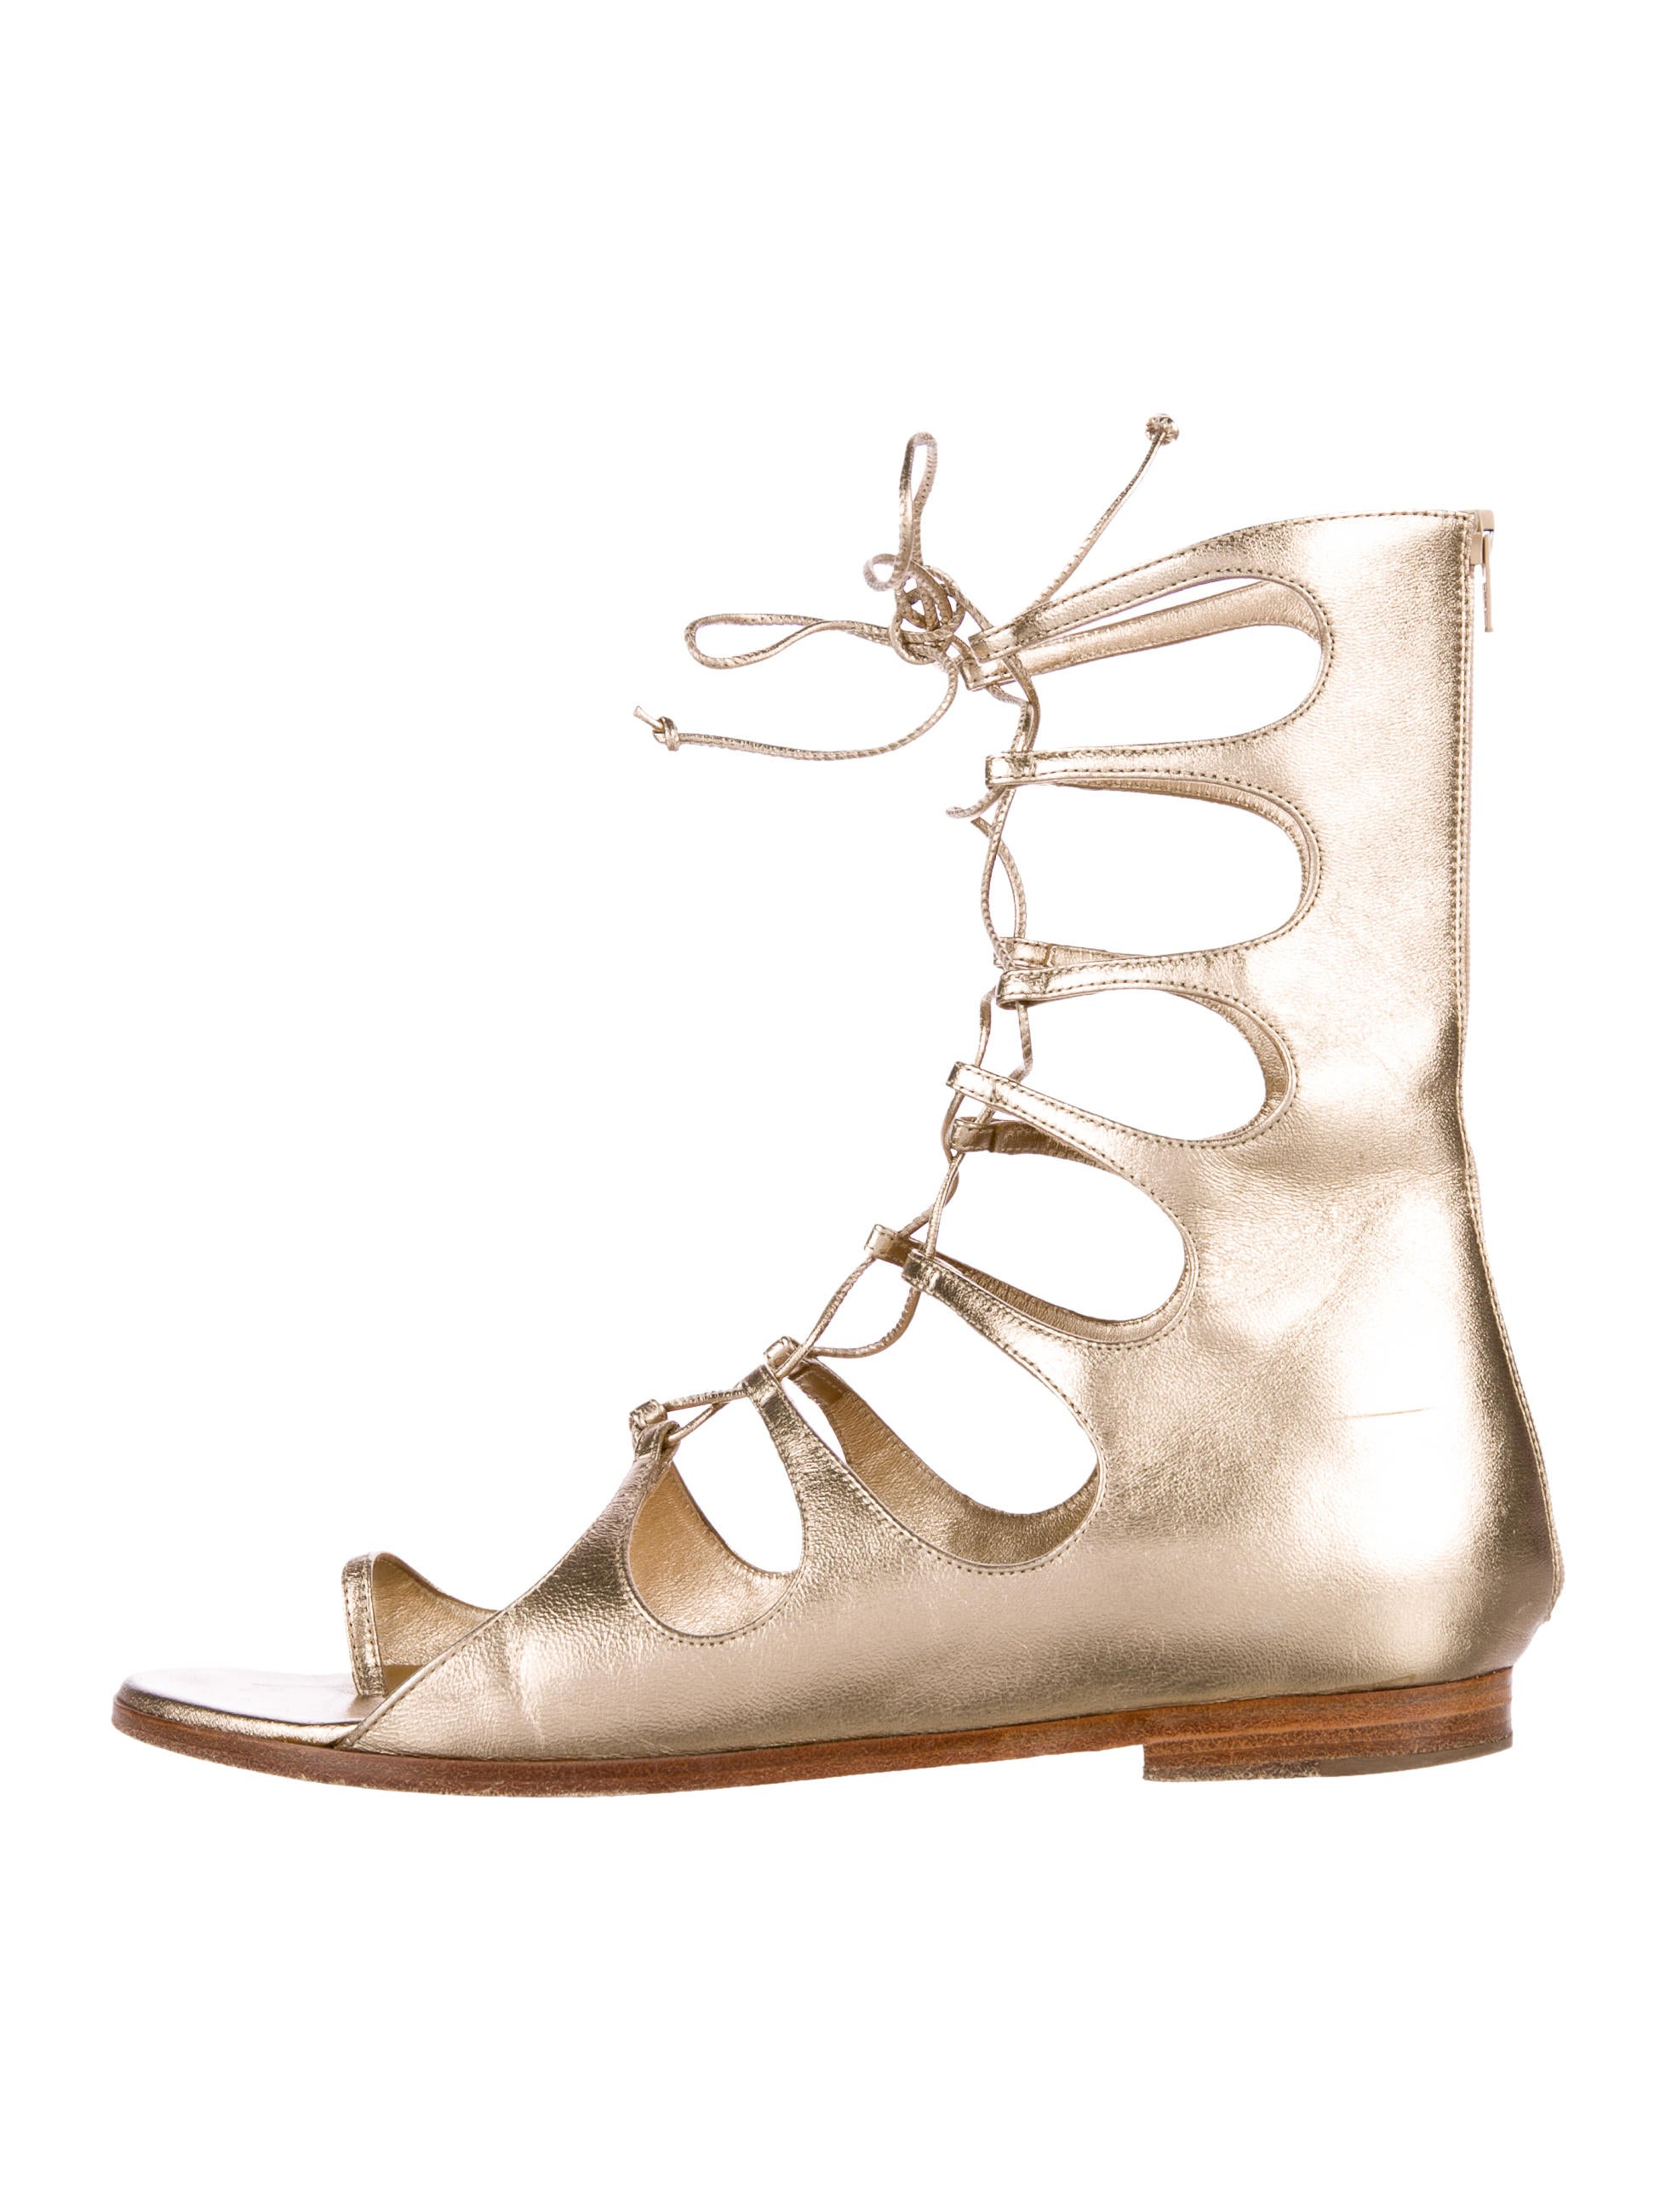 552abe7165af Christian Louboutin Sparty Gladiator Sandals - Shoes - CHT87284 ...